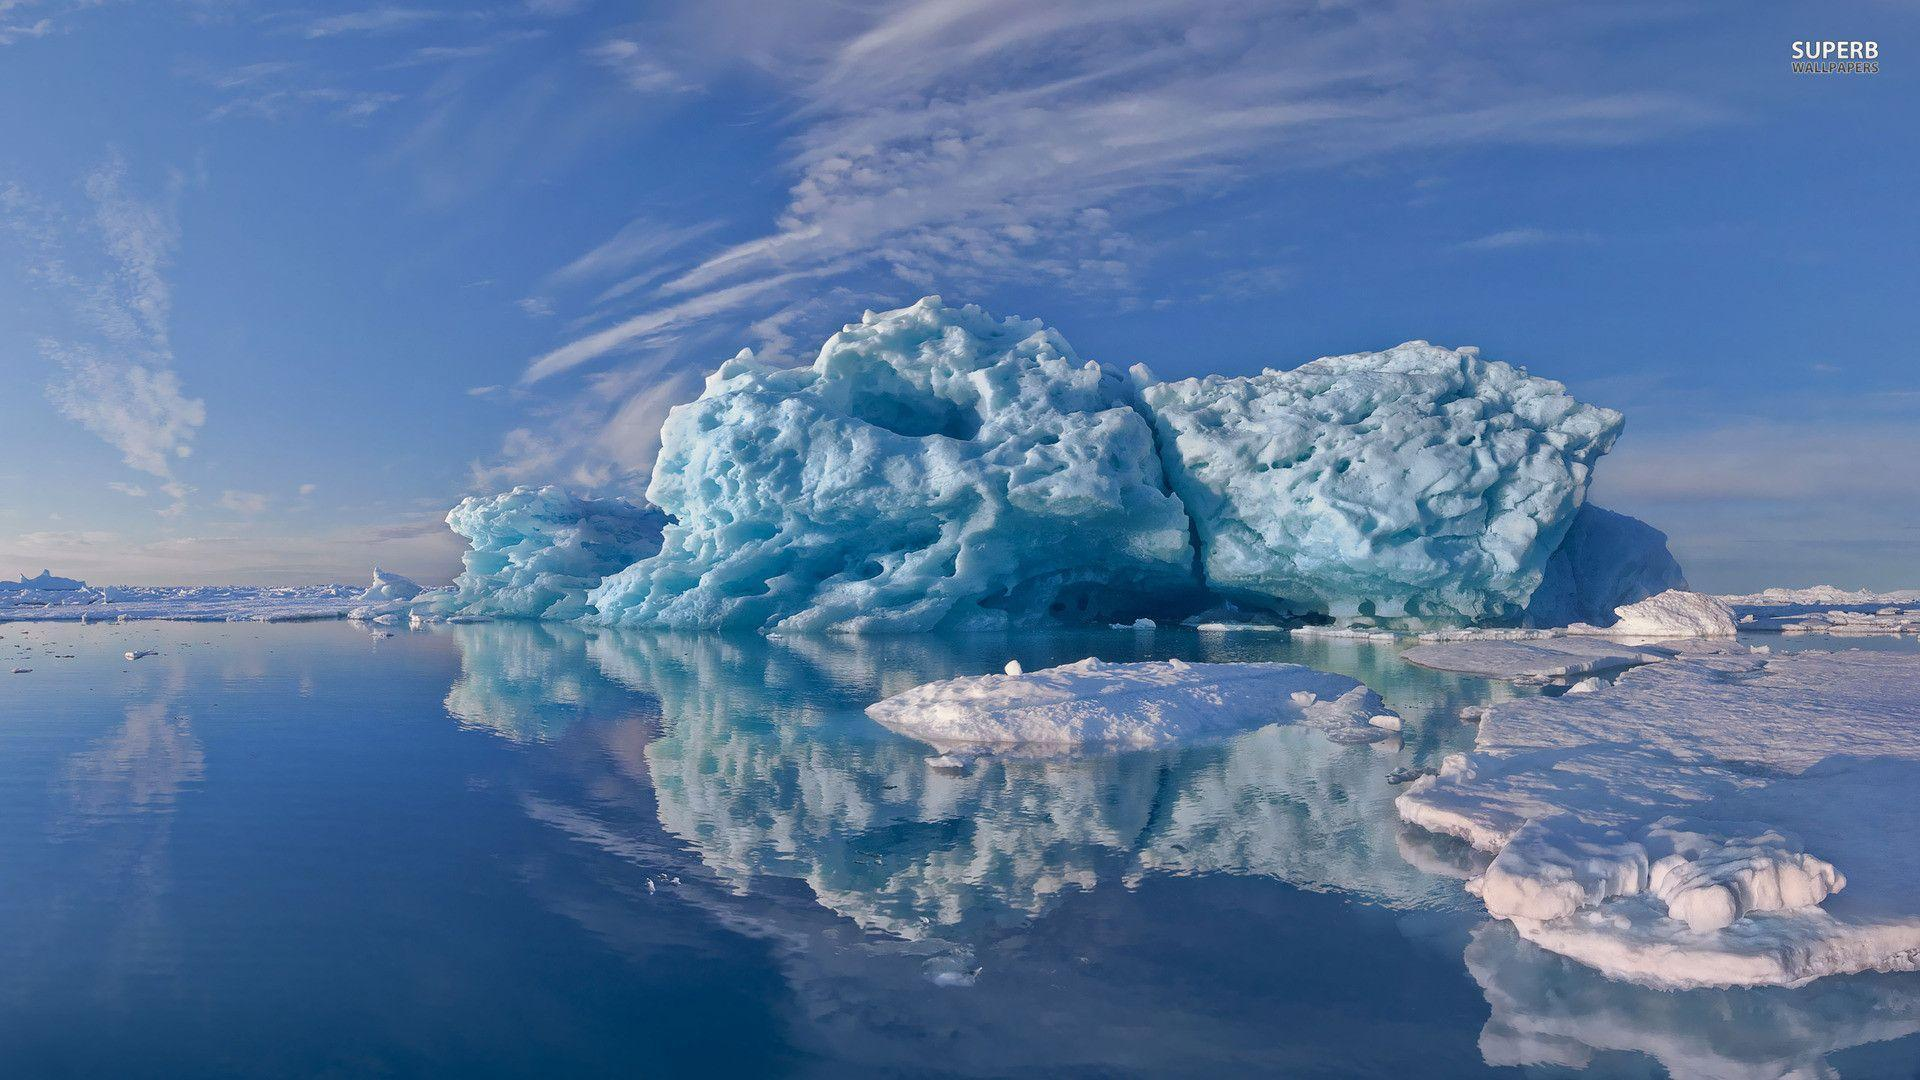 Iceberg, Greenland wallpapers